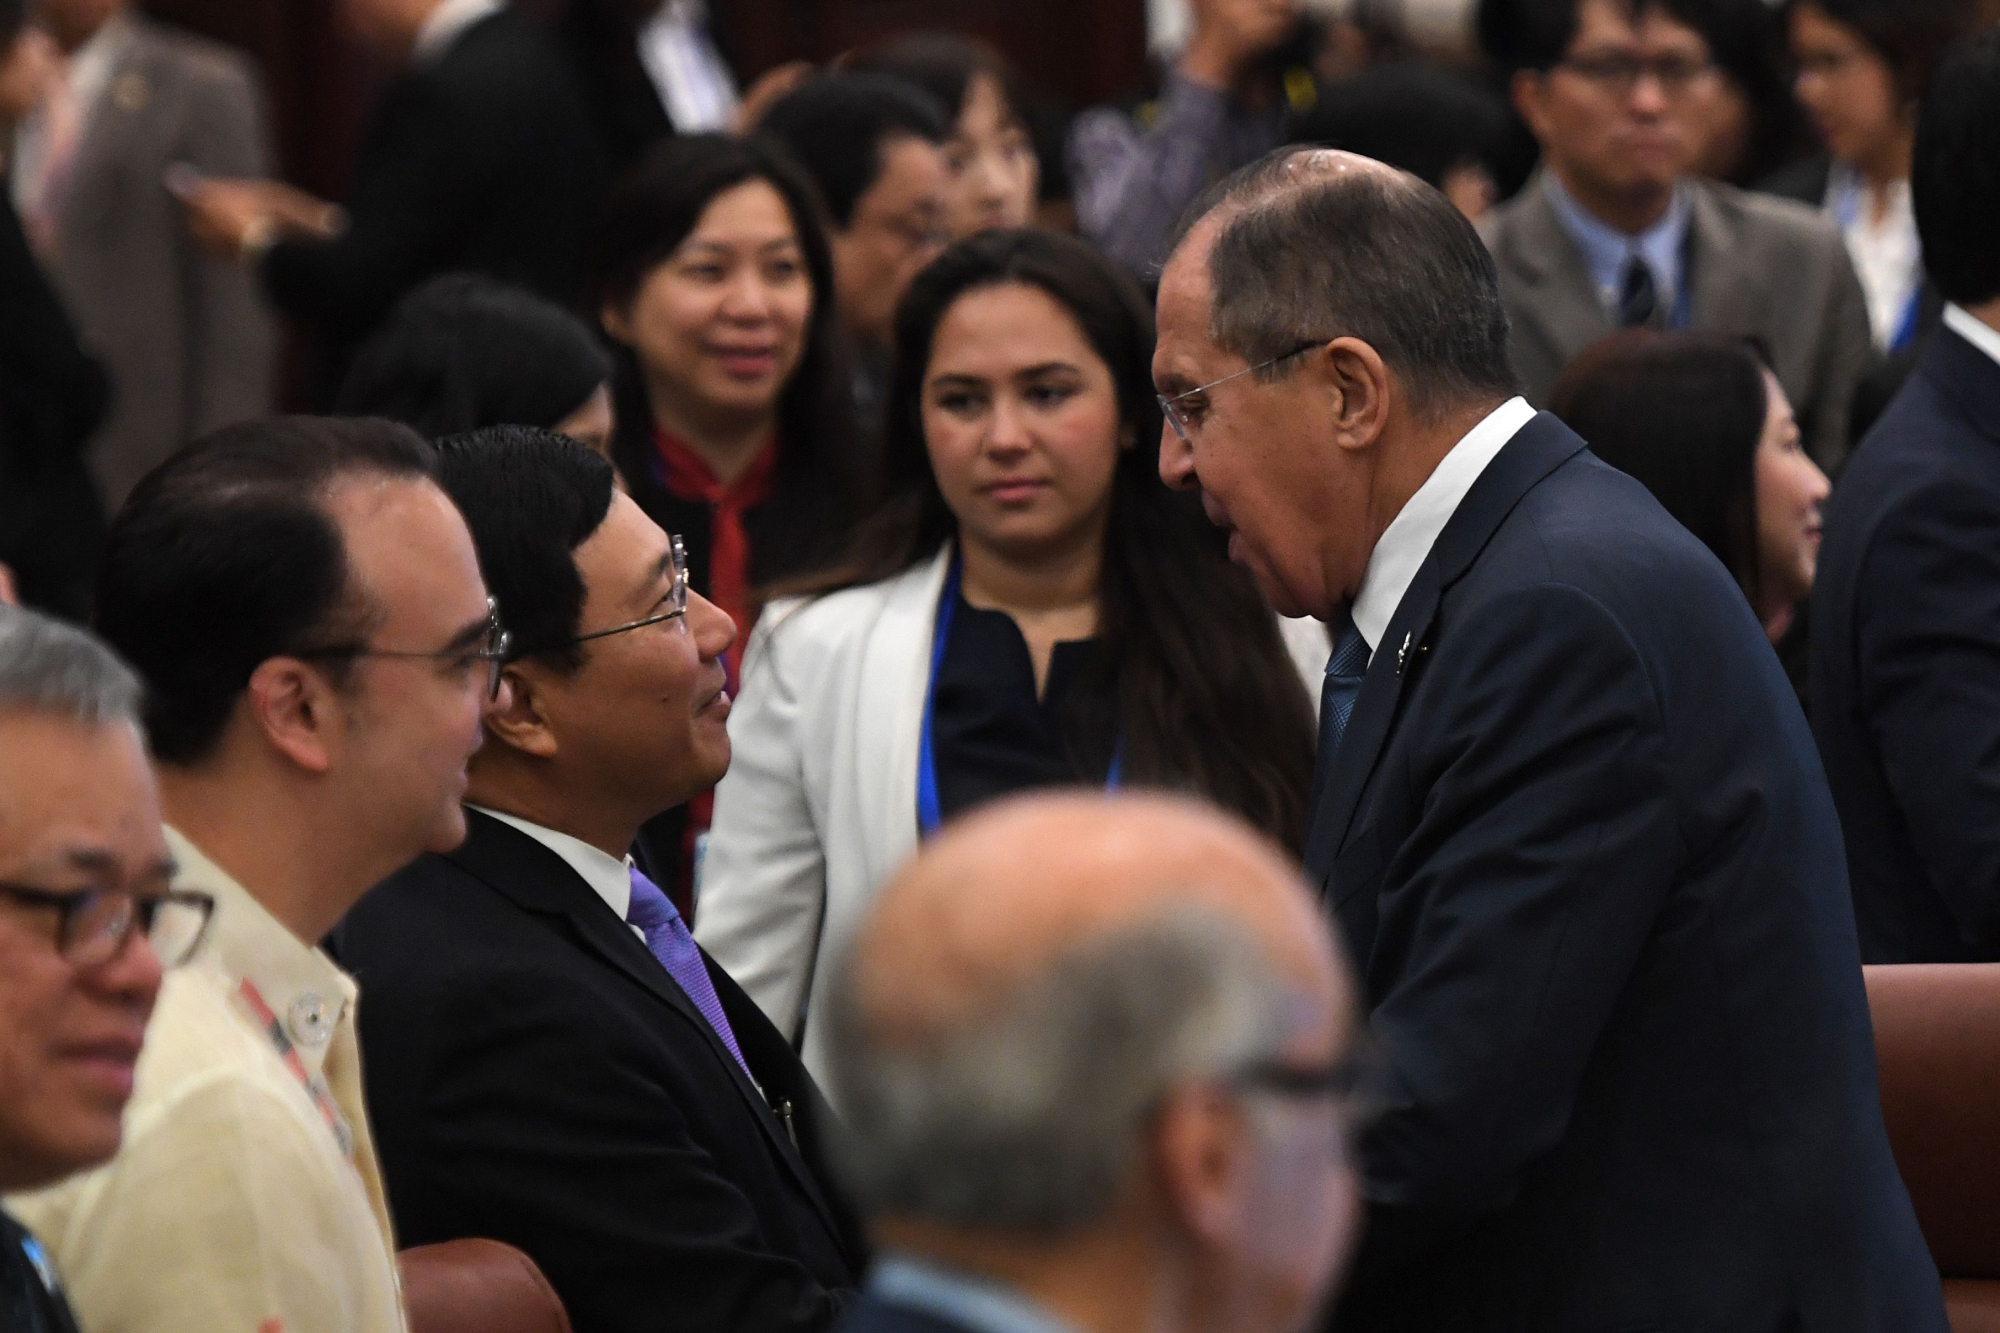 Russian Foreign Minister Sergey Lavrov (right) is greeted by Vietnamese Foreign Minister Pham Binh Minh at the opening of the APEC Ministerial Meeting  in Danang, Vietnam, on Wednesday. Leaders from the 21-member APEC organization will meet in Danang  on Friday and Saturday. | AFP-JIJI